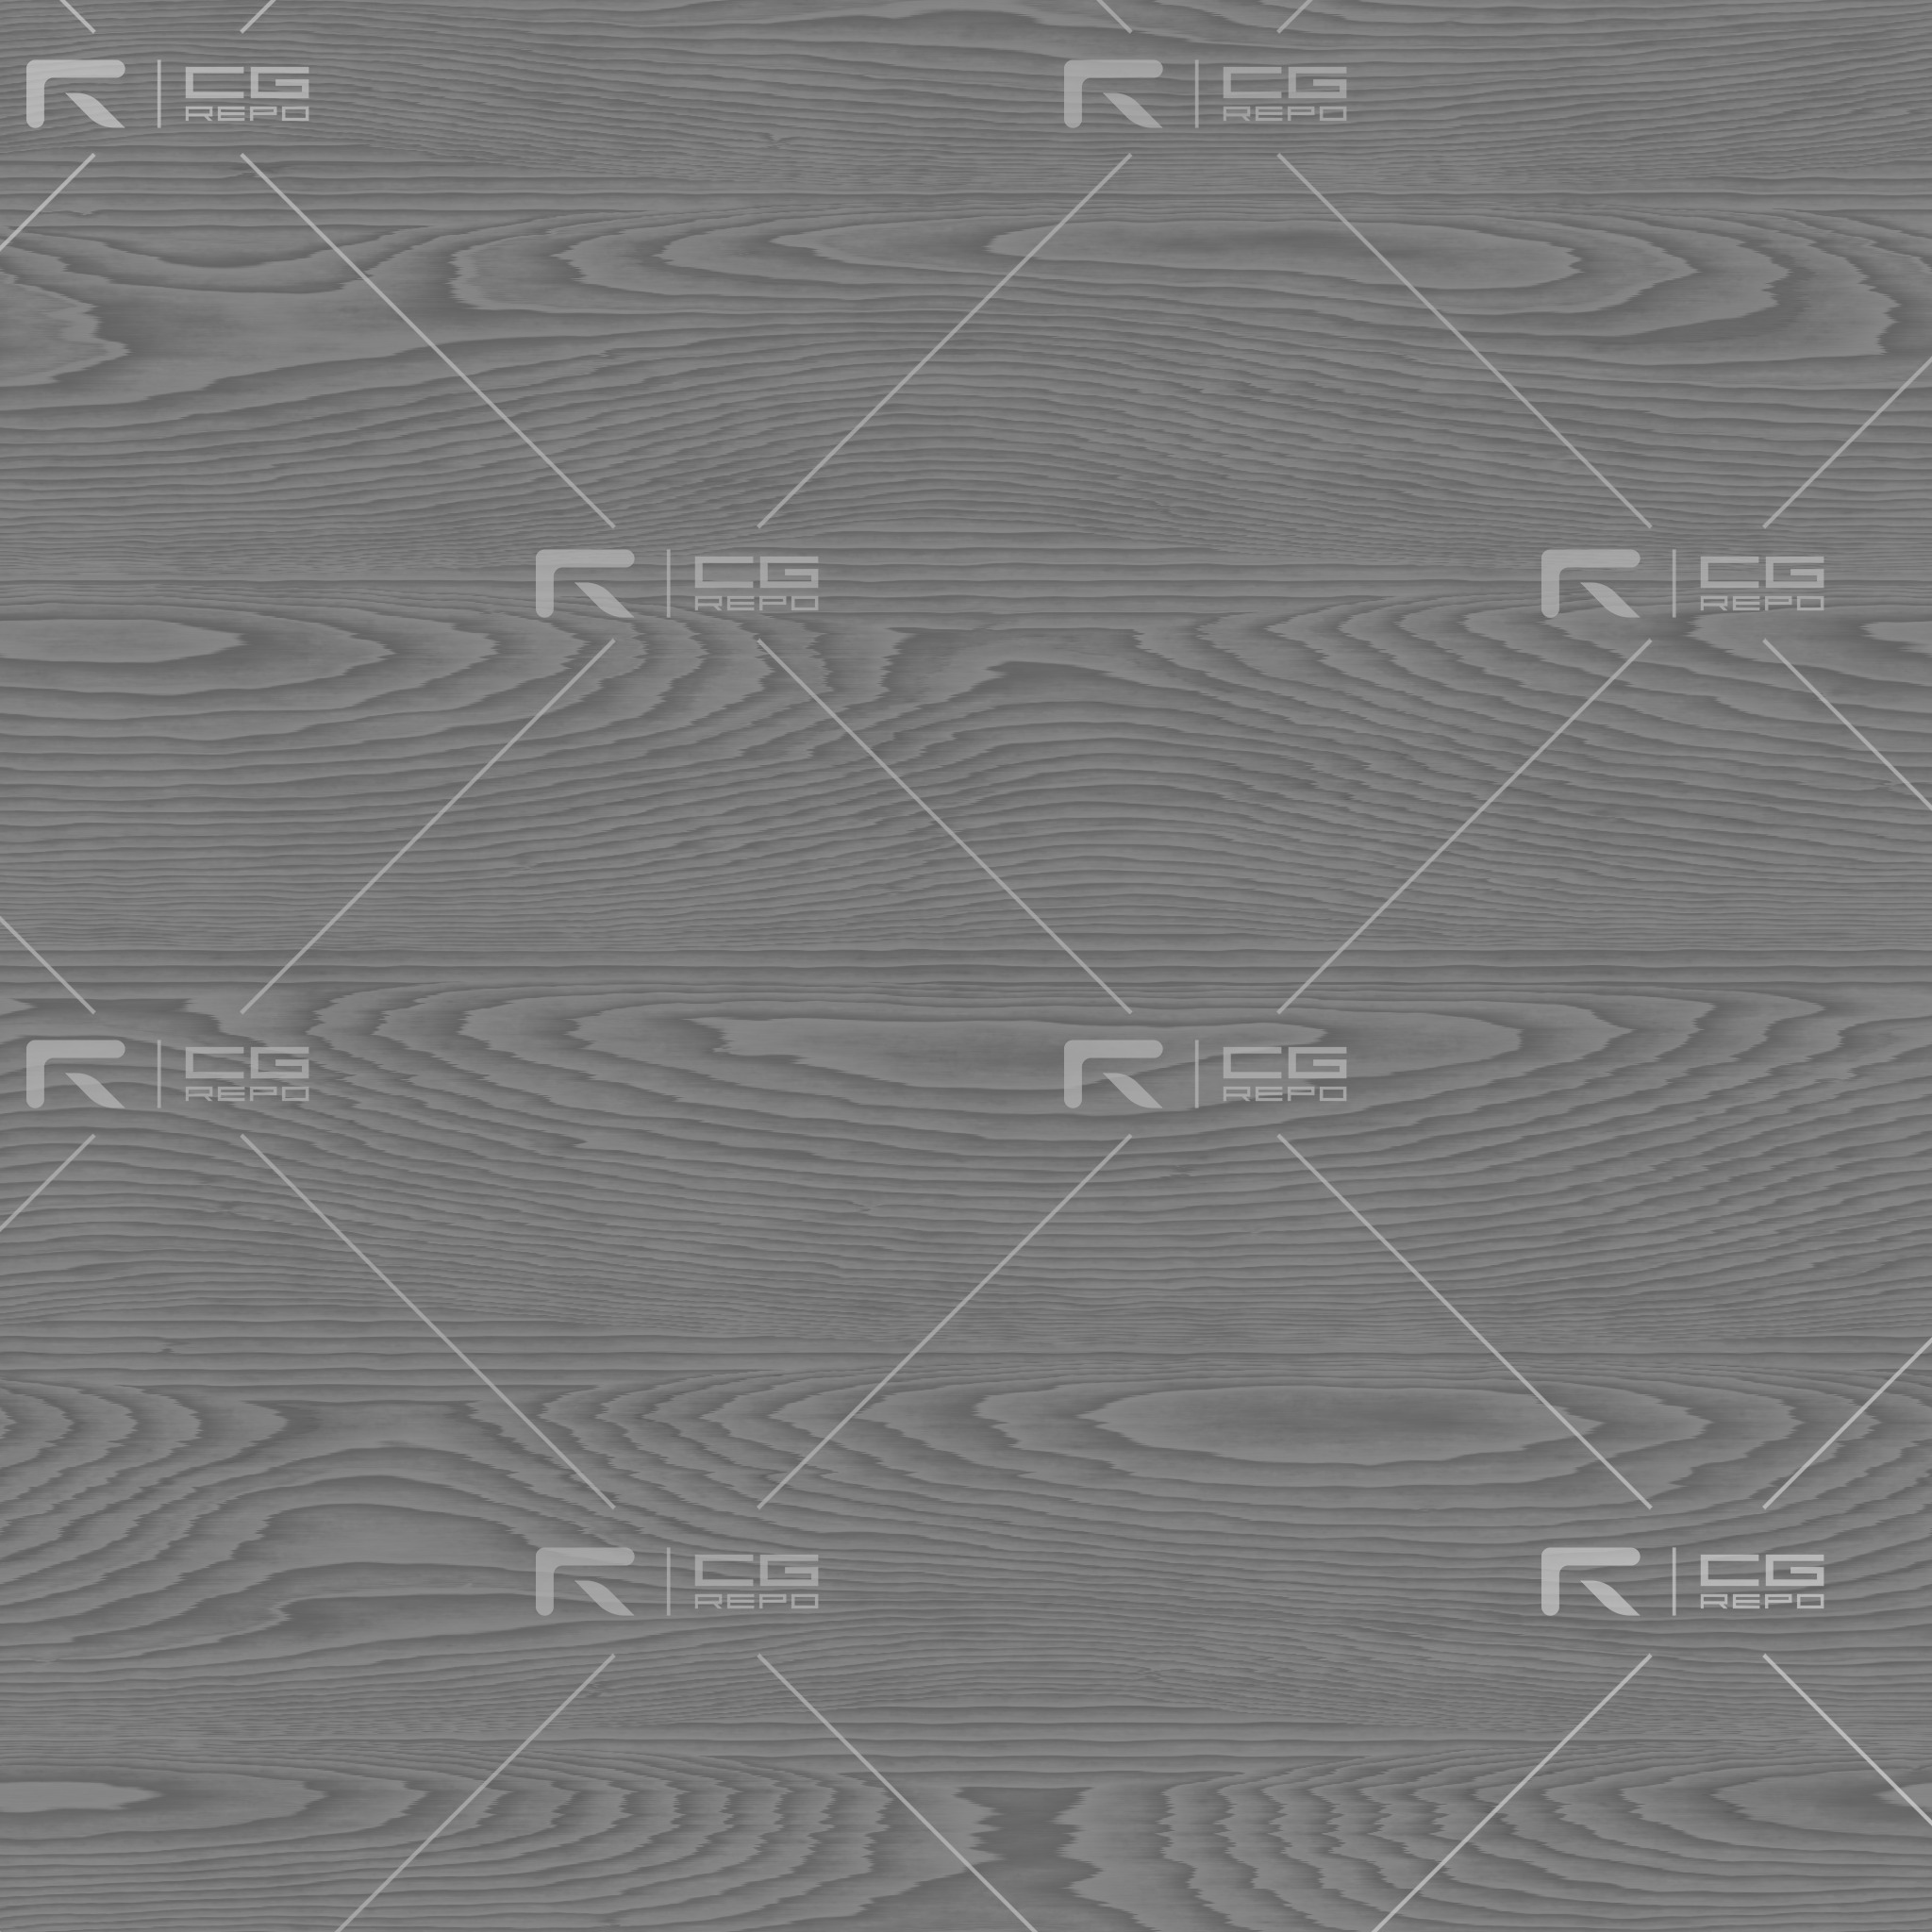 Oak - Natural - Flat Roughness Texture